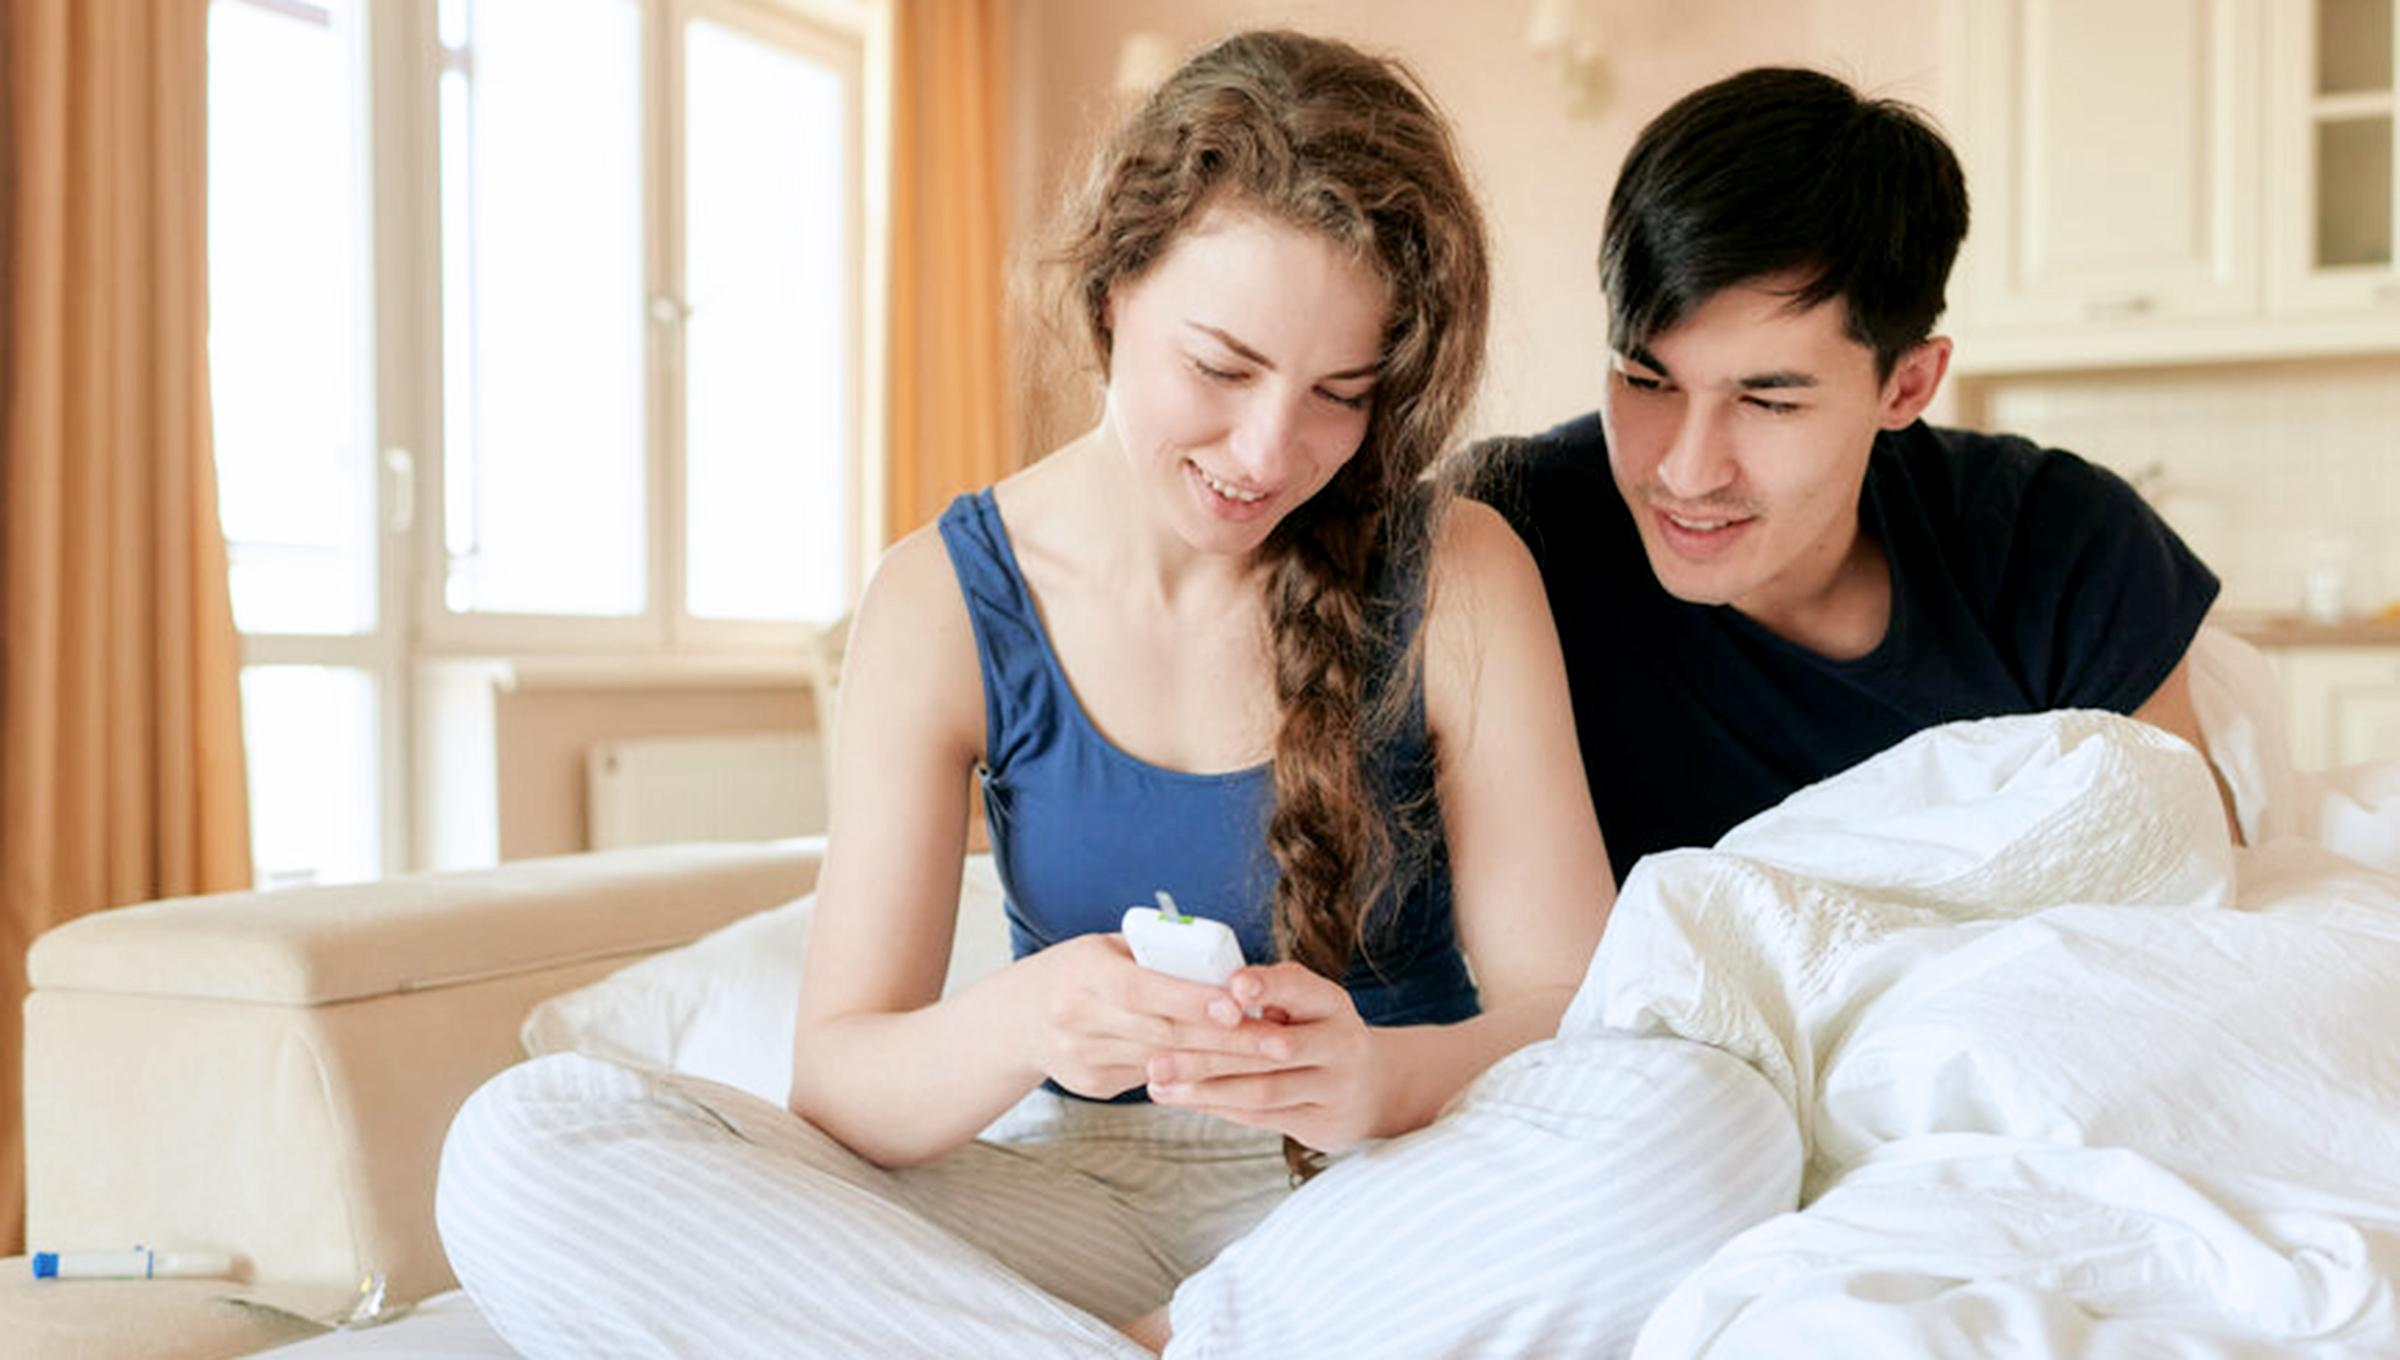 A man and woman sit in bed looking at the woman's glucose monitor.